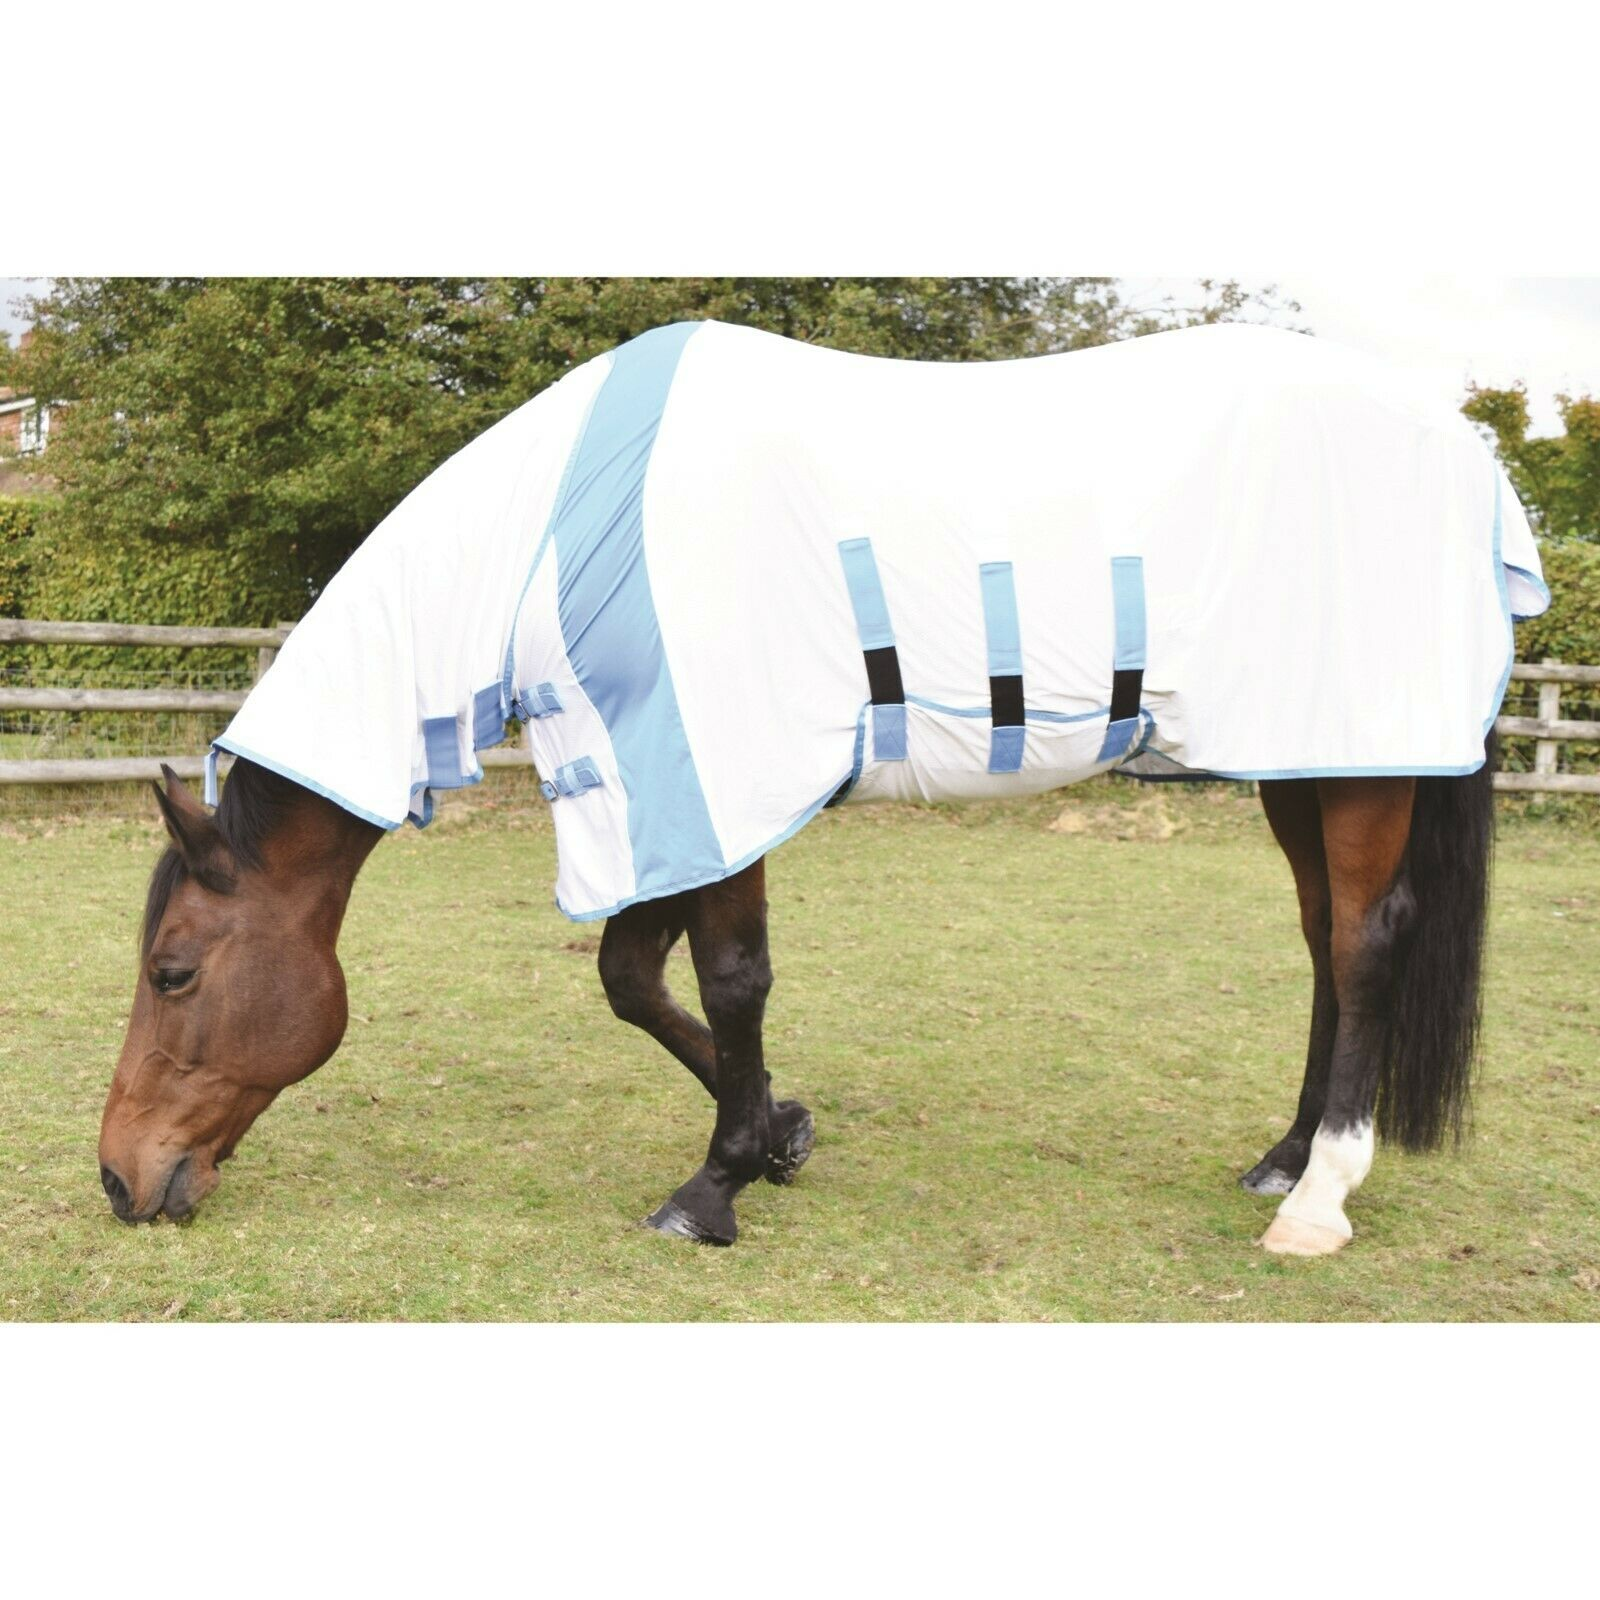 JHL Ultra Fly Relief Combo Rug, White Sky, 5'6  5'9  6'0  6'9   rrp